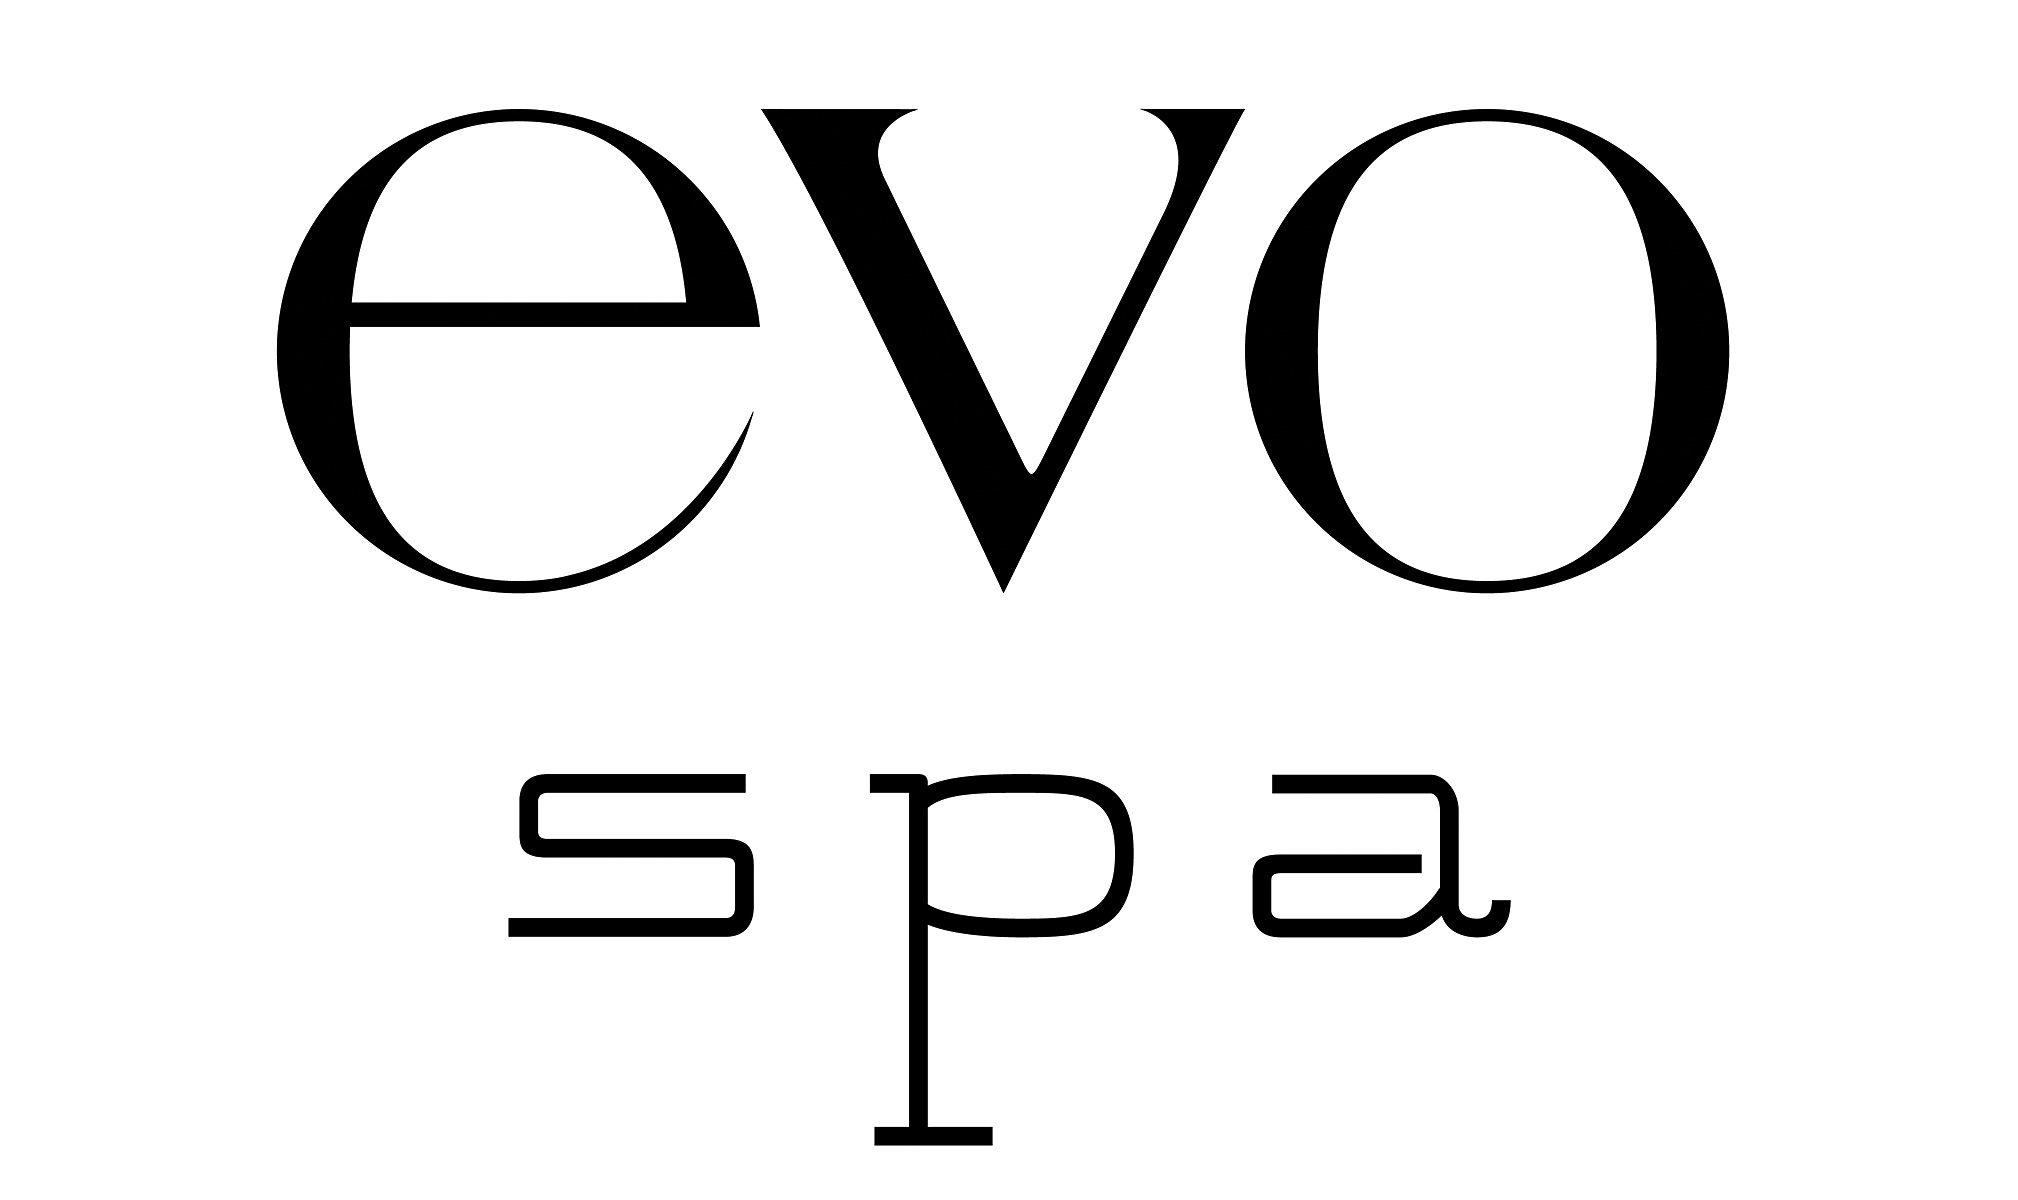 evo_spa-design